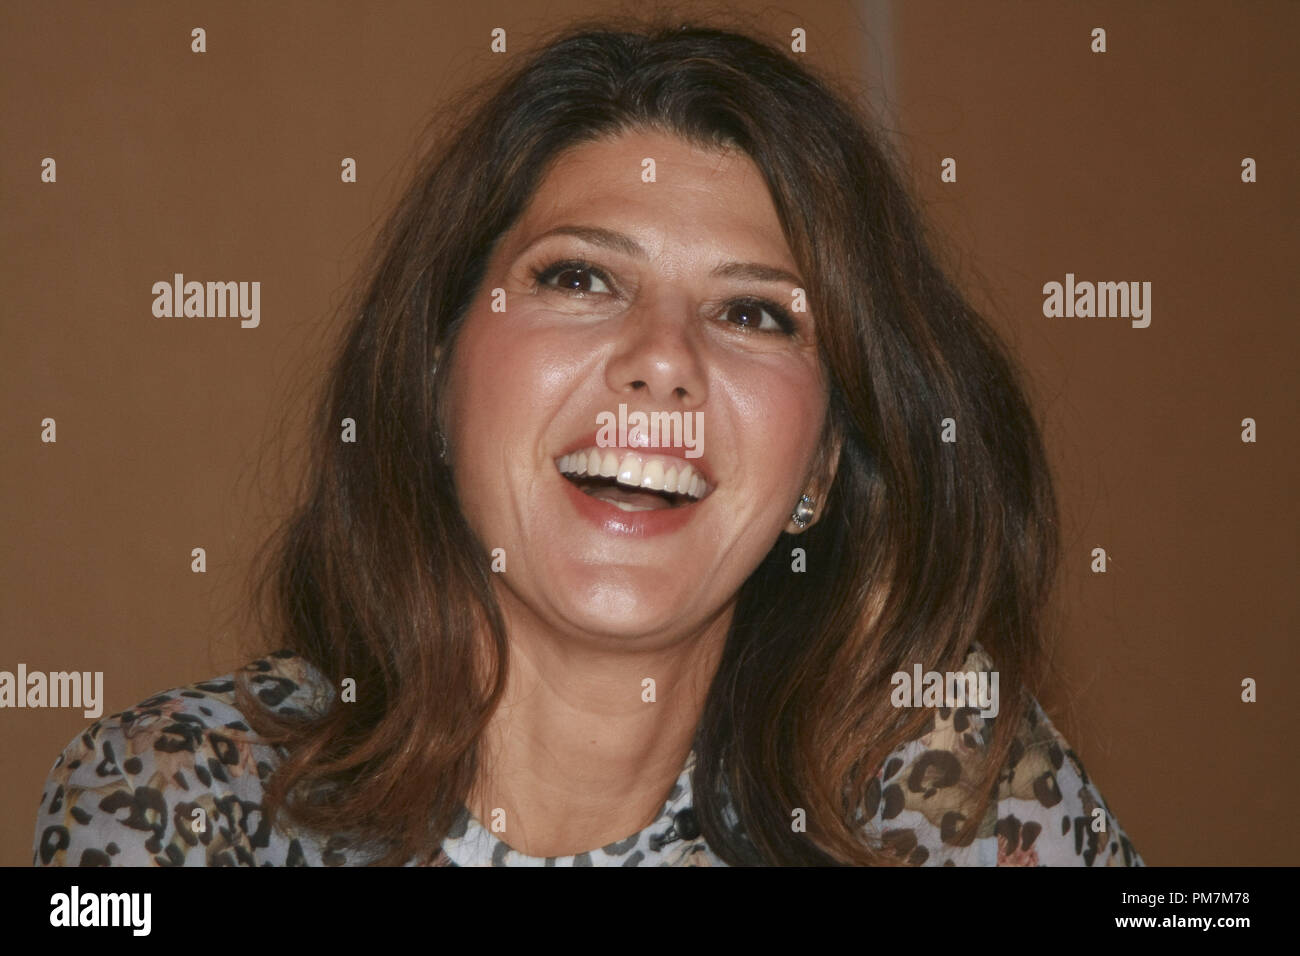 Marisa Tomei 'The Ides of March'  Portrait Session, September 26, 2011.  Reproduction by American tabloids is absolutely forbidden. File Reference # 31175_039JRC  For Editorial Use Only -  All Rights Reserved - Stock Image